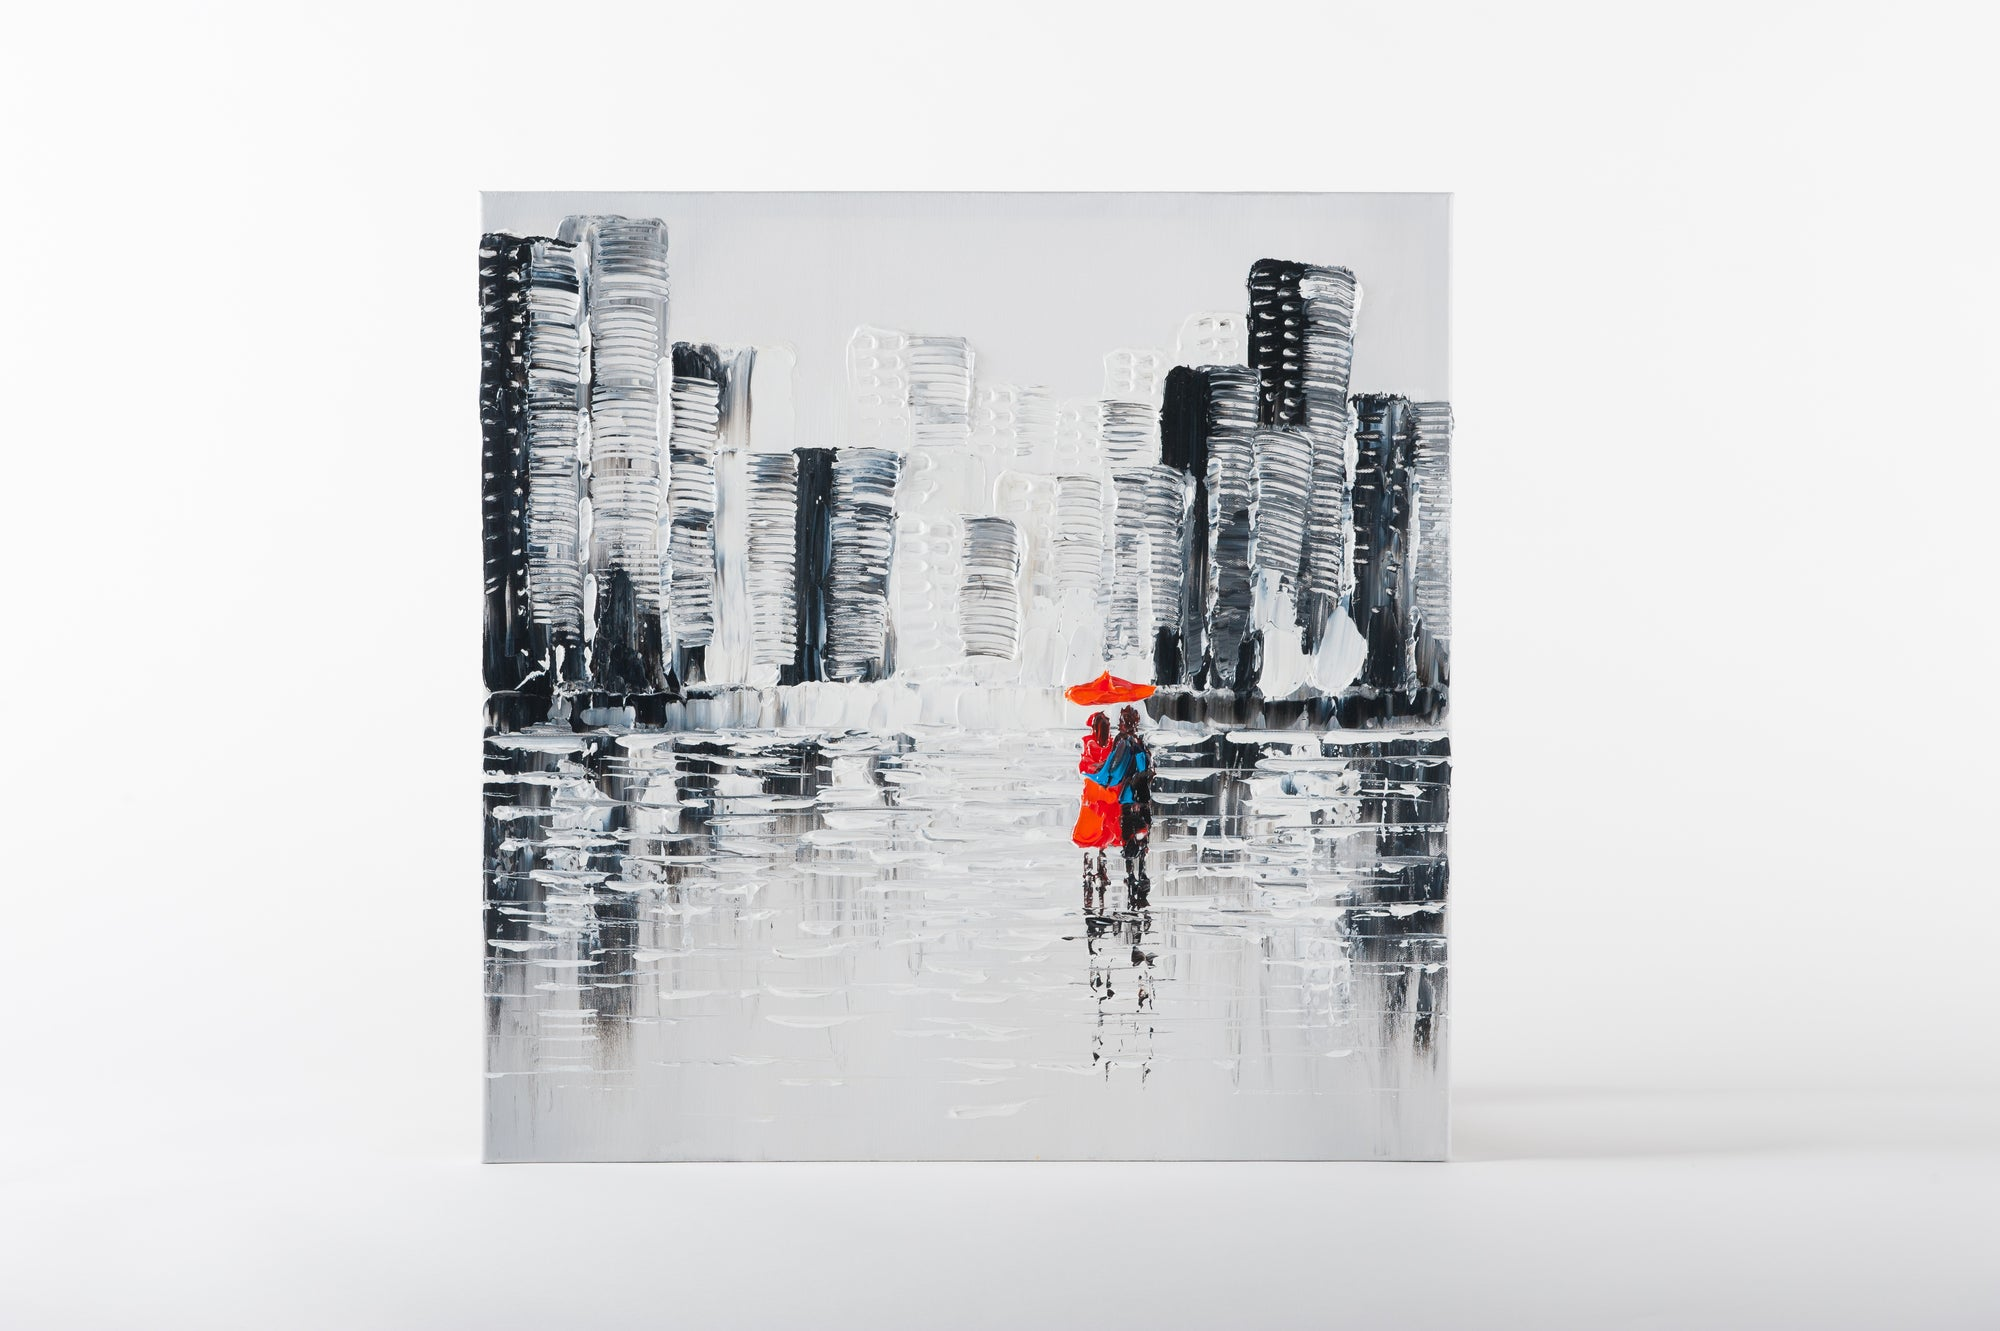 bw street scene hand painted wall art on canvas - Fervor + Hue